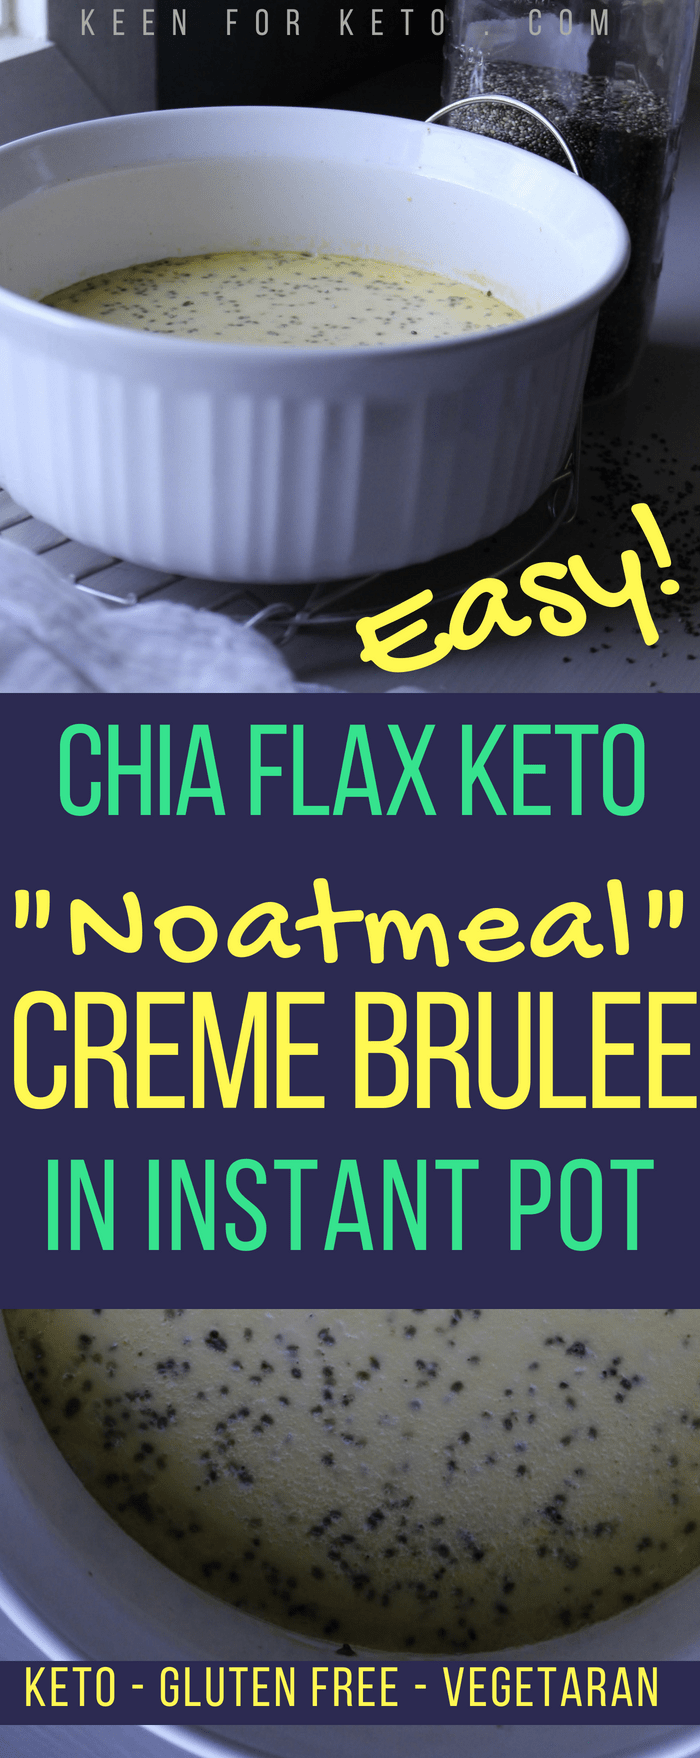 Easy Chia Flax Noatmeal Crème Brûlée in Instant Pot Easy Chia Flax Noatmeal Crème Brulee in Instant Pot is insanely quick and easy and delicious! Crème Brulee might sound fancy and difficult, but it's not—especially this low carb keto version in a pressure cooker!